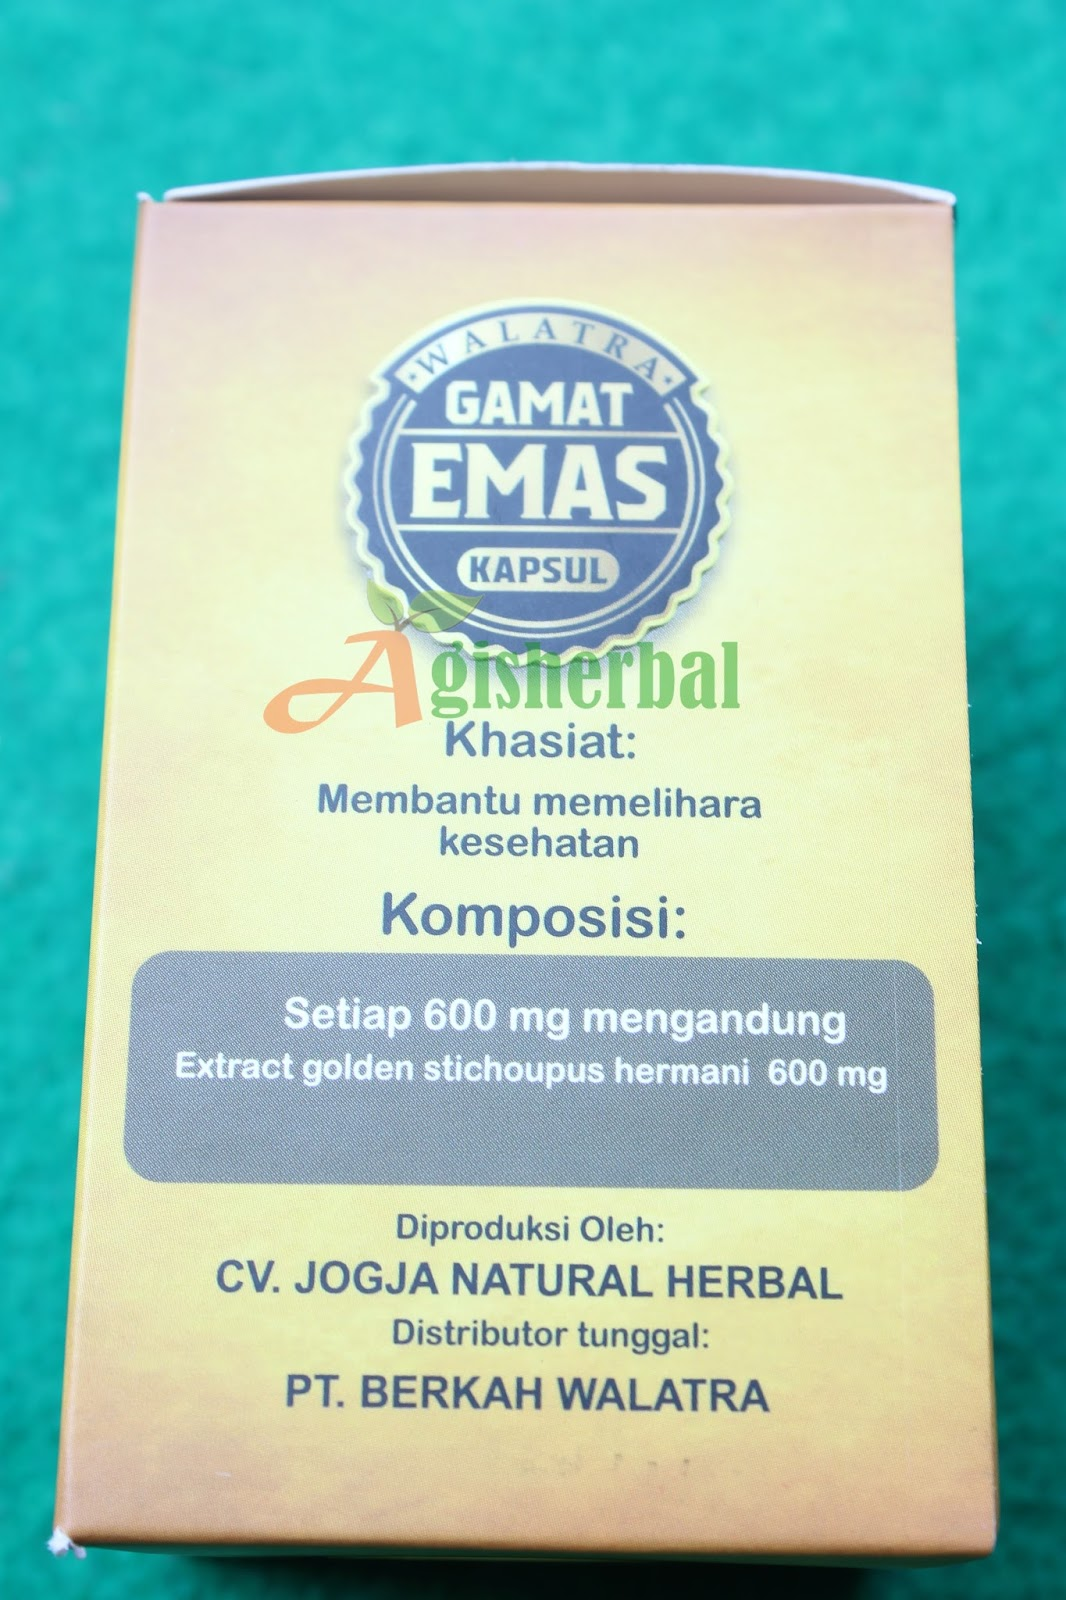 Komposisi Gamat Emas Kapsul Herbal Multikhasiat